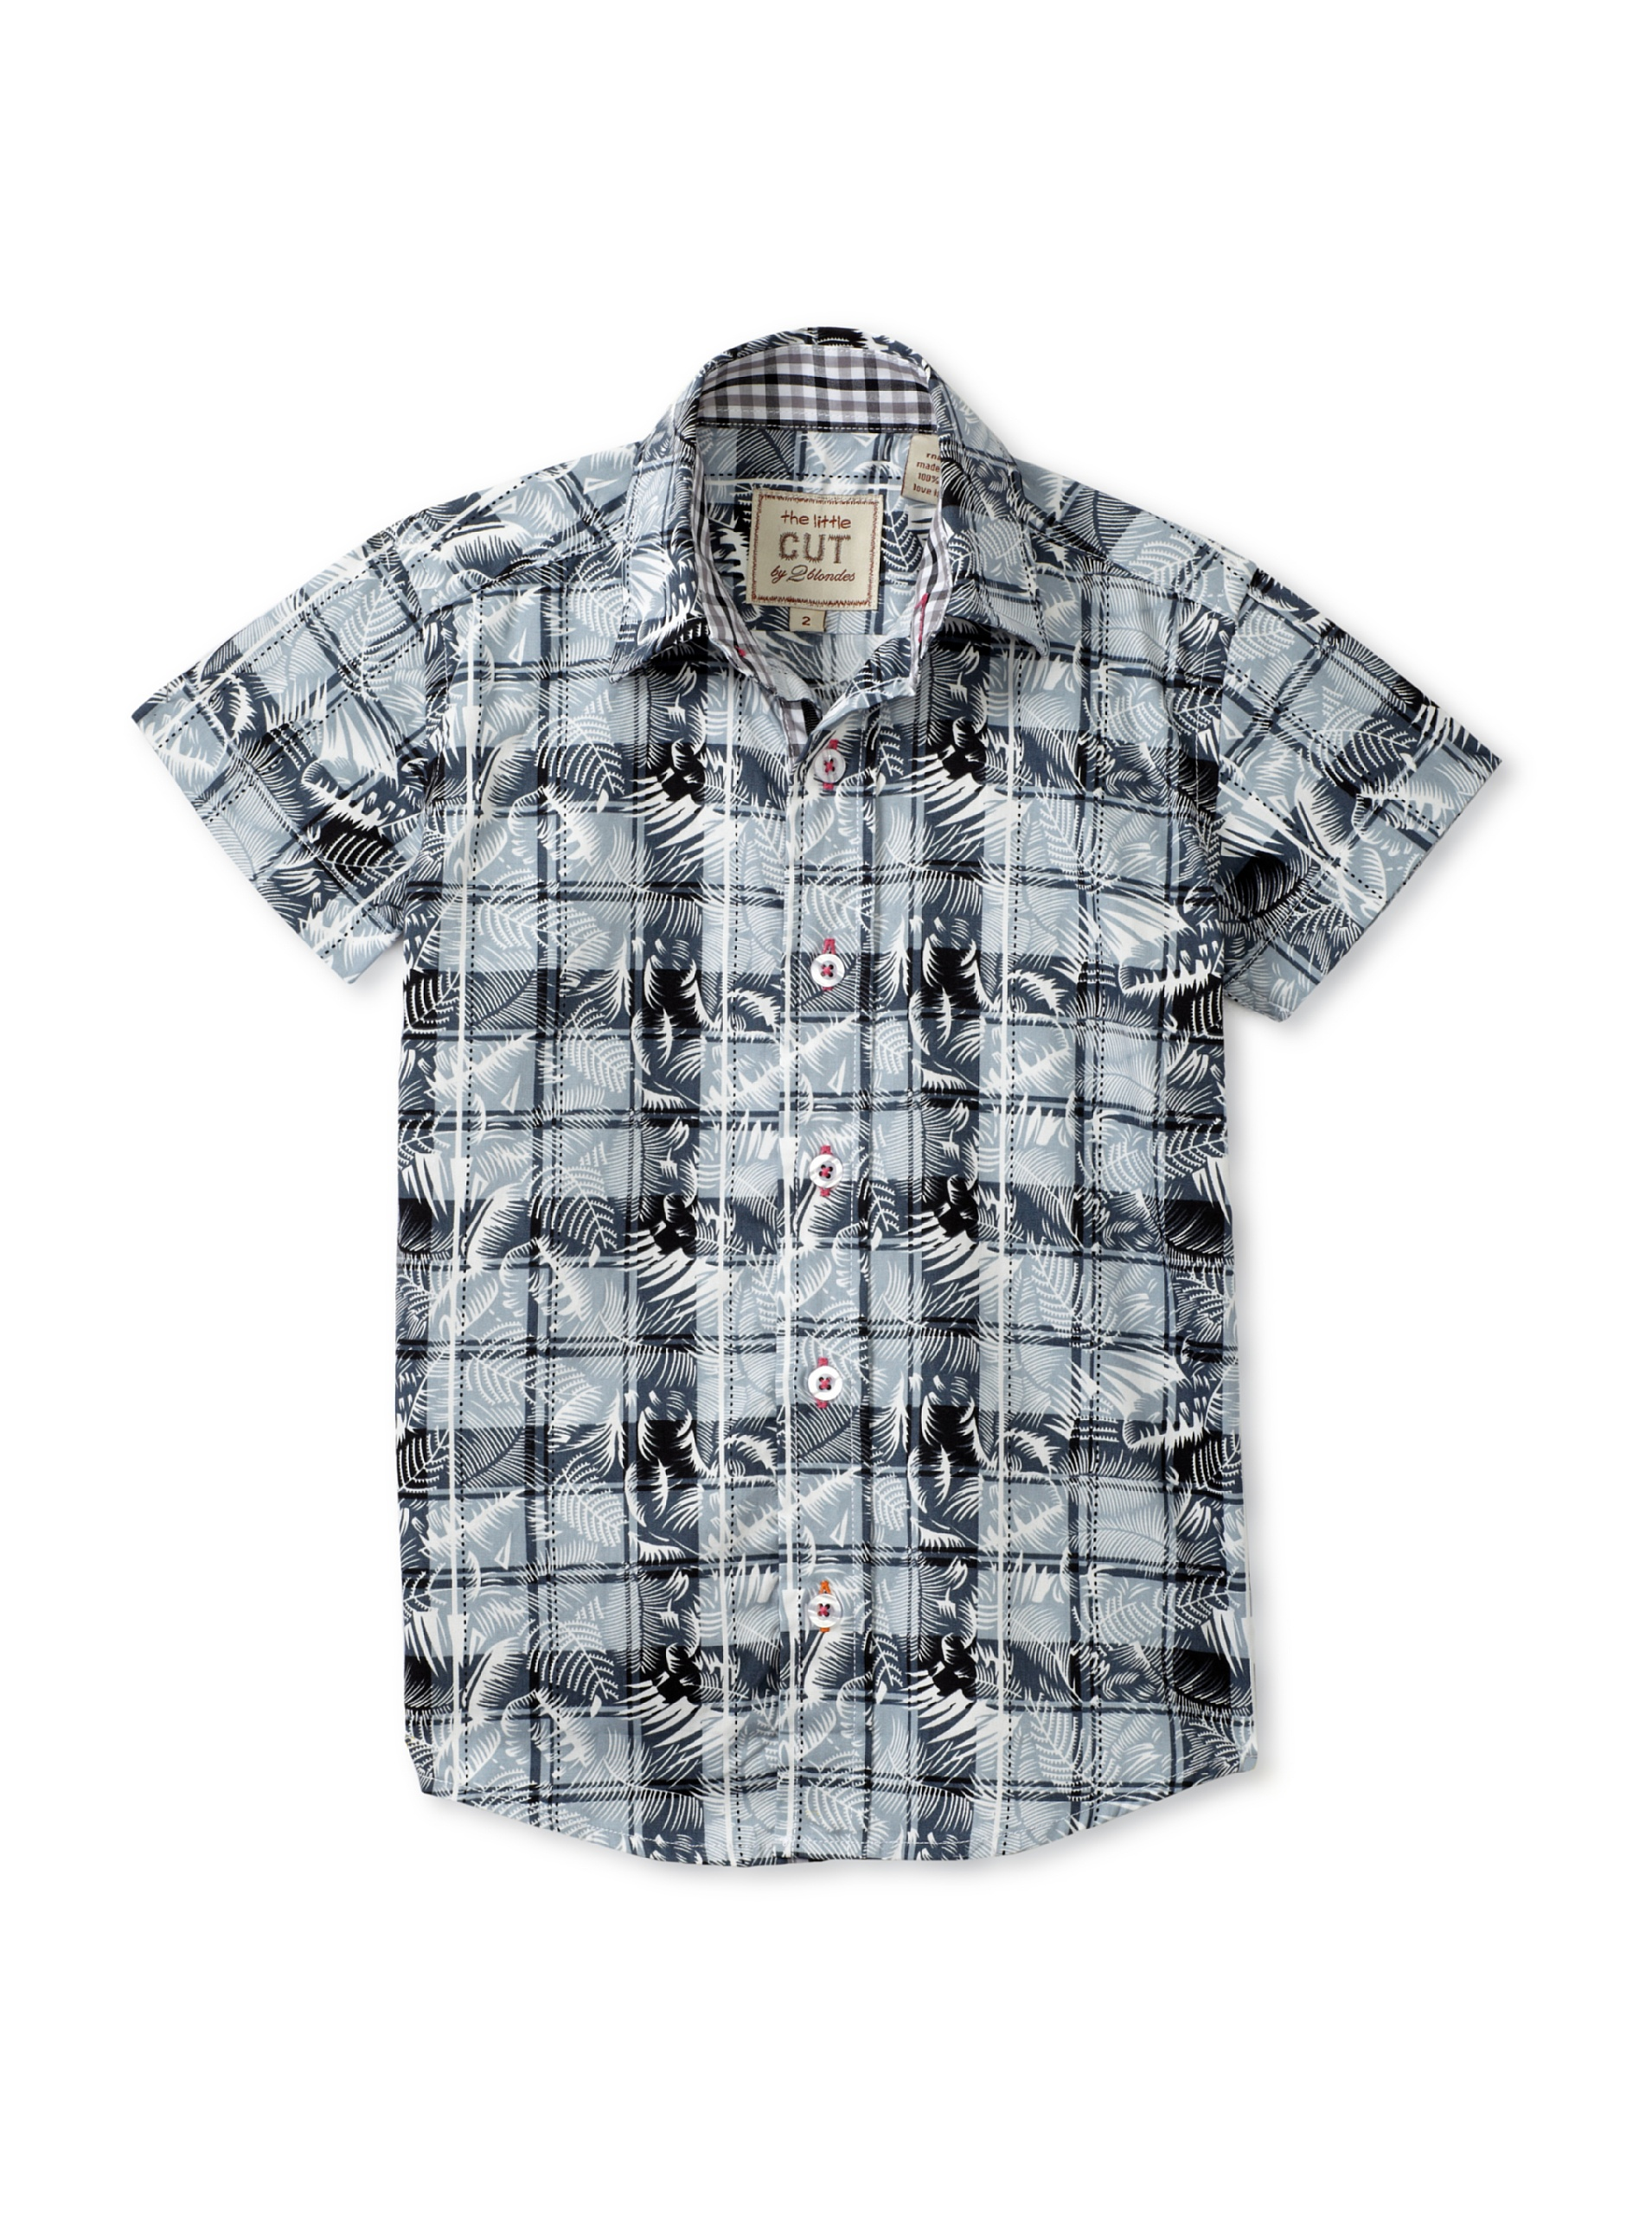 CUT By 2 Blondes Boys Hawaii 5-0 Short Sleeve Button-Up (Black/White)